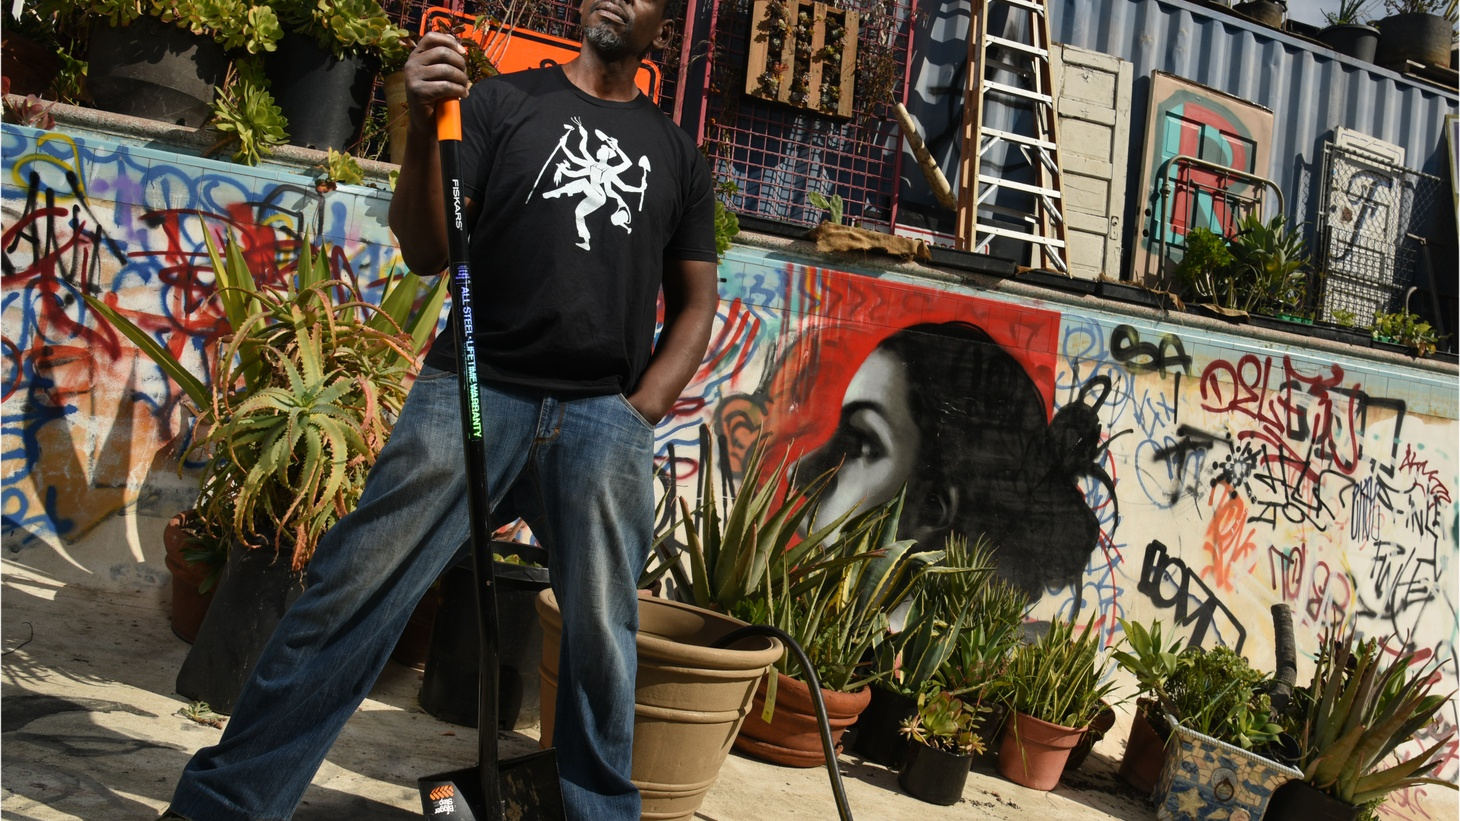 """Artist and community activist Ron Finley discusses how he's changing South LA, one garden at a time. Chef Jeremiah Tower talks about starring in """"The Last Magnificent,"""" a new documentary about his role as one of the defining figures in the early days of California cuisine. Plus: Laura Avery stuffs her """"Good Food"""" tote full of green garlic, while Evan and The Sporkful's Dan Pashman get into a heated dough-bate about donuts."""